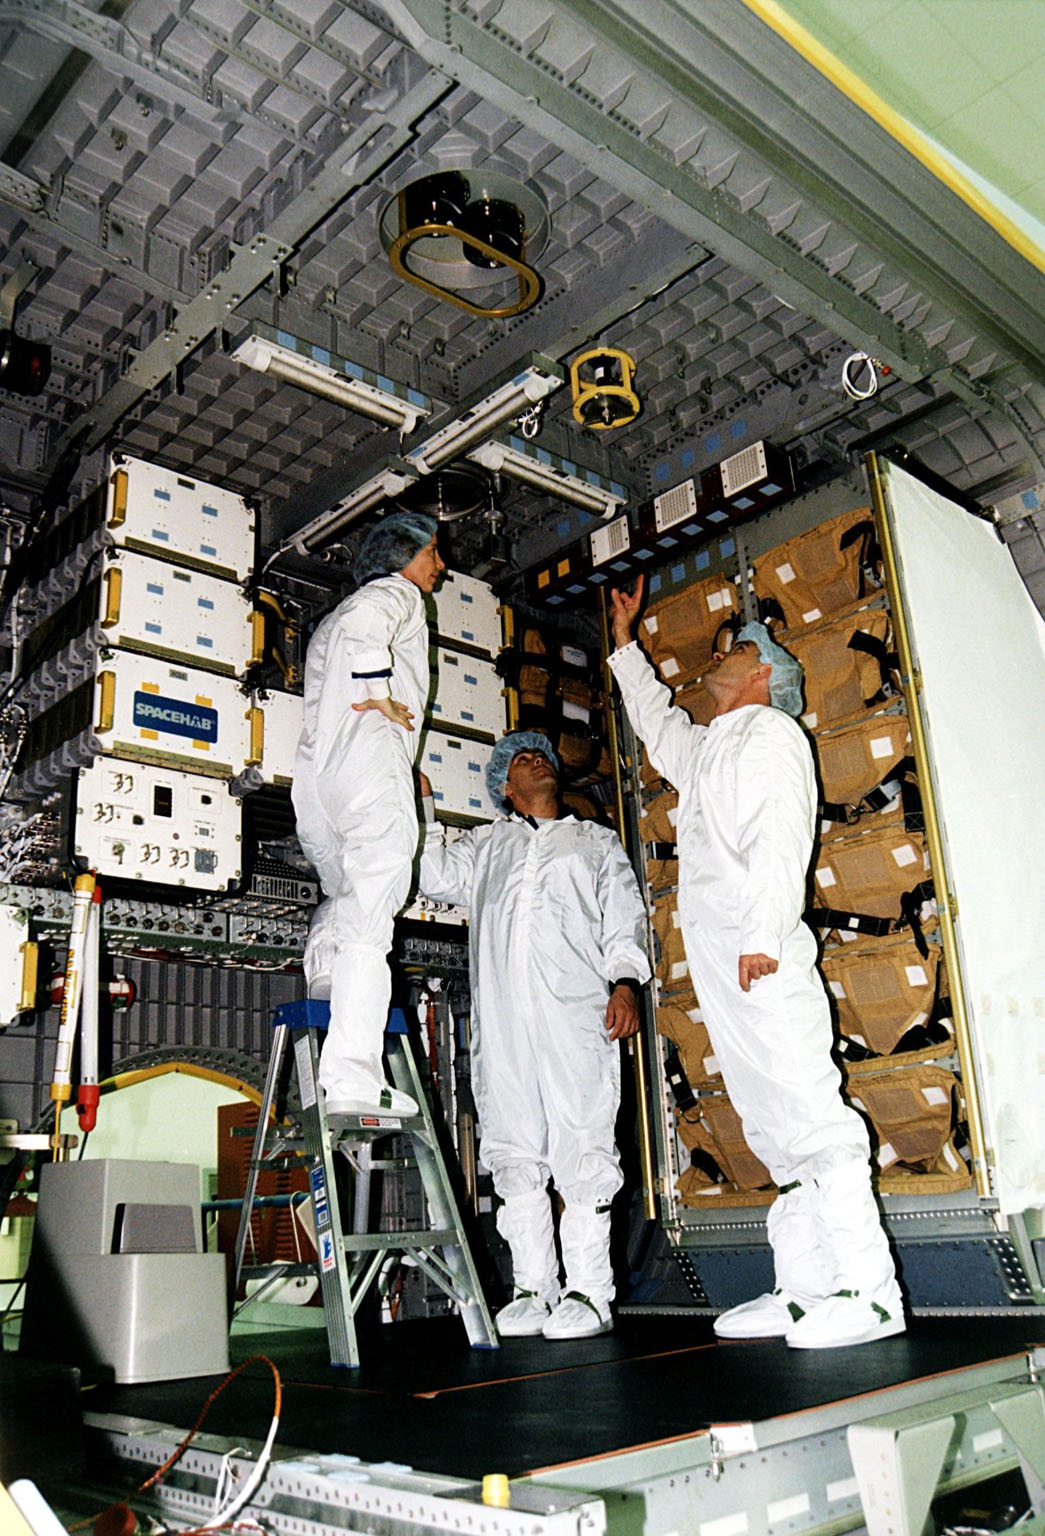 KENNEDY SPACE CENTER, FLA. -- Several STS-89 crew members participate in the Crew Equipment Interface Test (CEIT) inside the SPACEHAB module at the SPACEHAB Payload Processing Facility at Port Canaveral in preparation for the mission, slated to be the first Shuttle launch of 1998. From left to right are Mission Specialists Bonnie Dunbar, Ph.D., and Salizhan Sharipov of the Russian Space Agency, and Pilot Joe Edwards. The CEIT gives astronauts an opportunity to get a hands-on look at the payloads with which they will be working on-orbit. STS-89 will be the eighth of nine scheduled Mir dockings and will include a double module of SPACEHAB, used mainly as a large pressurized cargo container for science, logistical equipment and supplies to be exchanged between the orbiter Endeavour and the Russian Space Station Mir. The nine-day flight of STS-89 also is scheduled to include the transfer of the seventh American to live and work aboard the Russian orbiting outpost. Liftoff of Endeavour and its seven-member crew is targeted for Jan. 15, 1998, at 1:03 a.m. EST from Launch Pad 39A